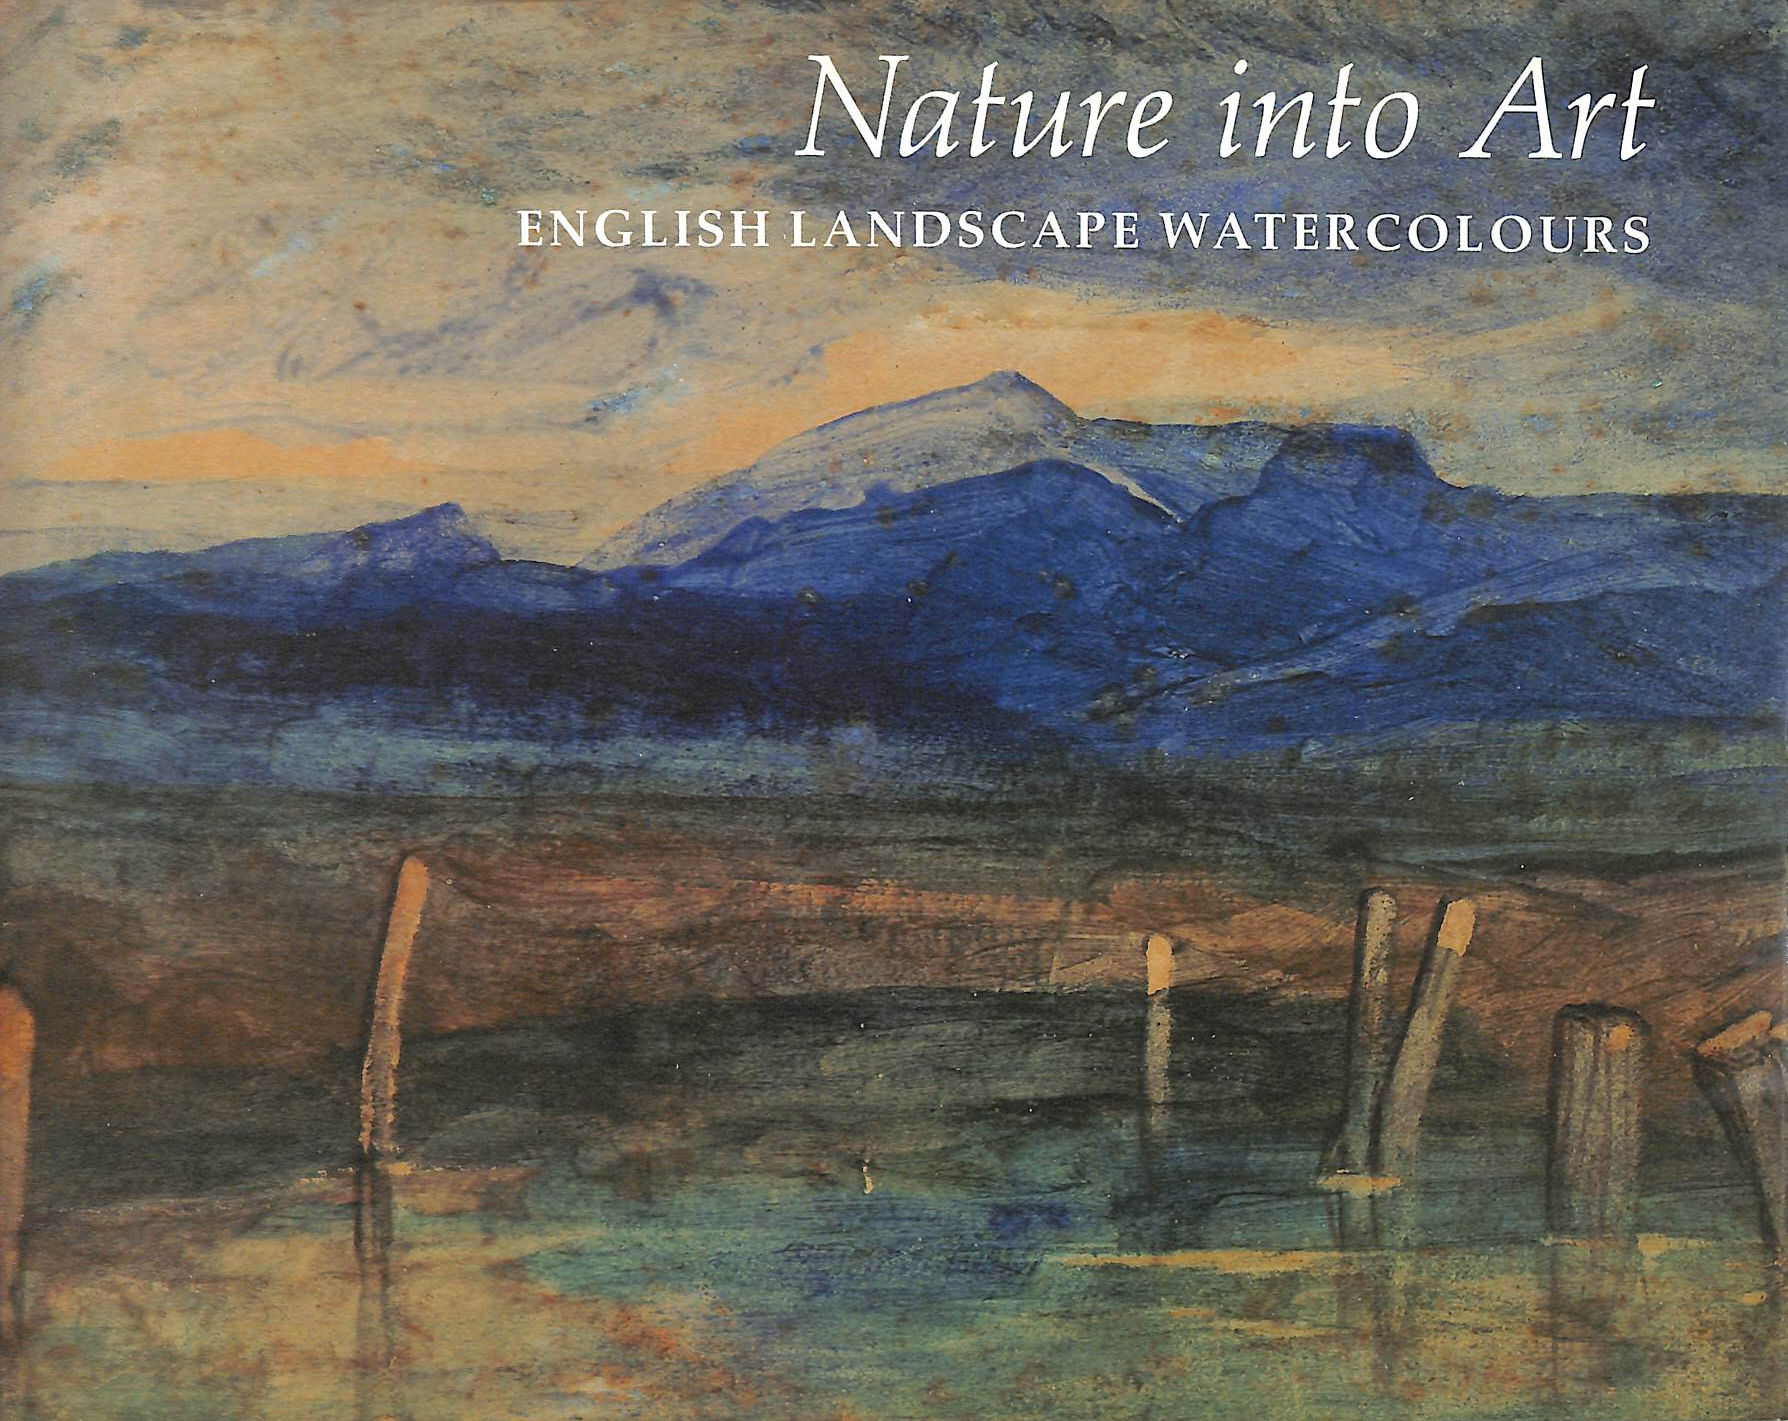 Image for Nature into Art: English Landscape Watercolours